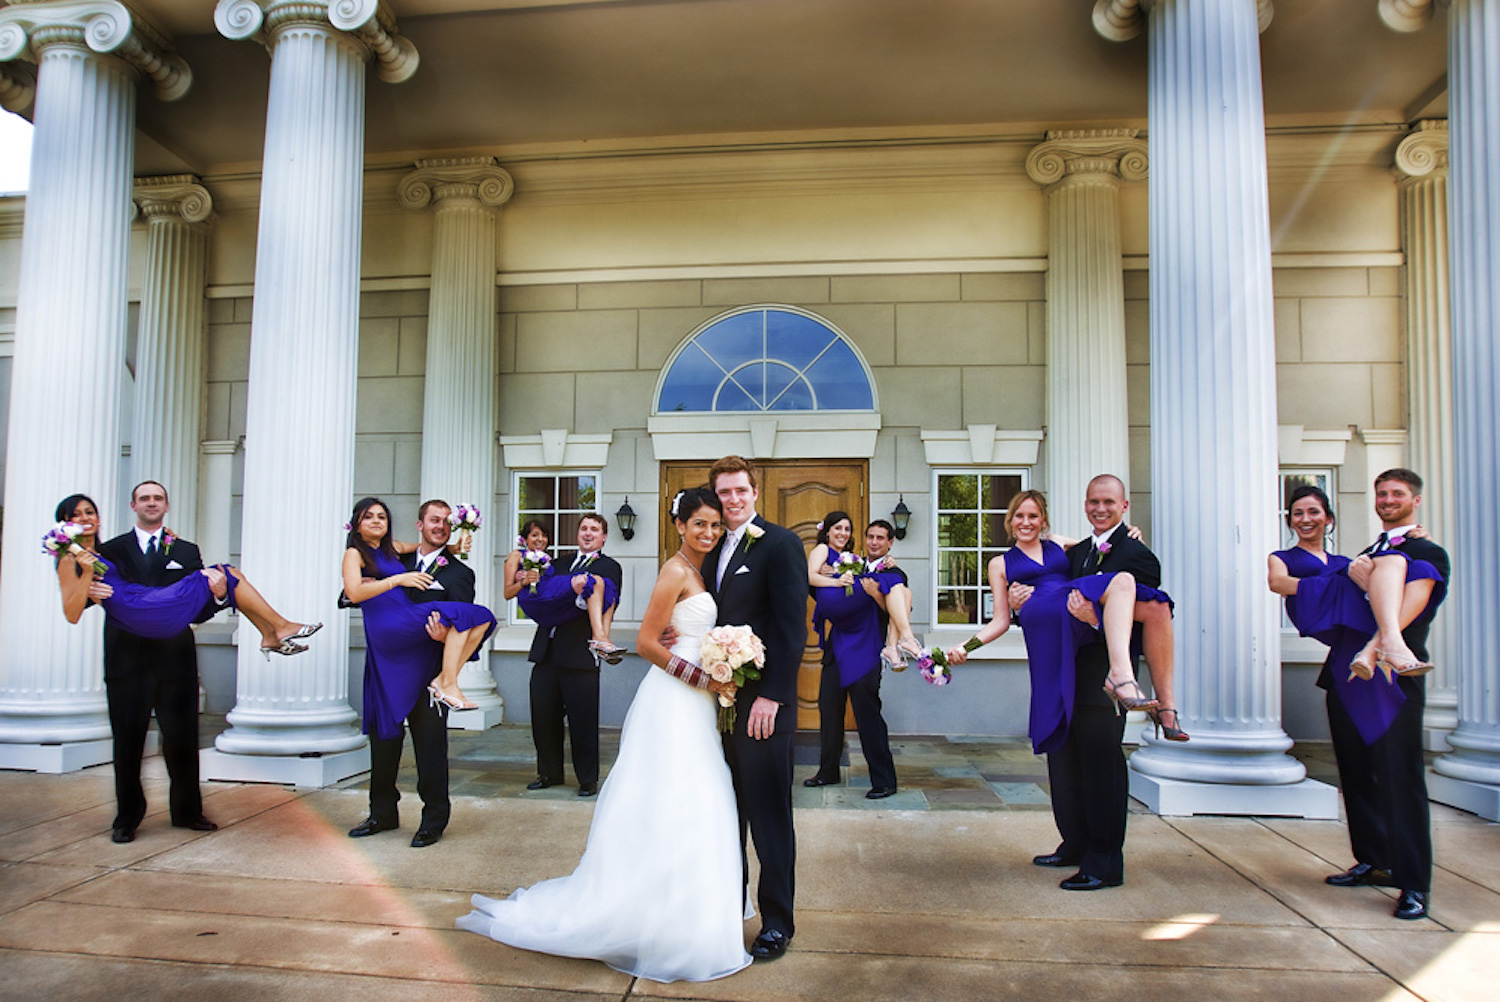 front-exterior-bridal-party-Photoart-by-Lu.jpg